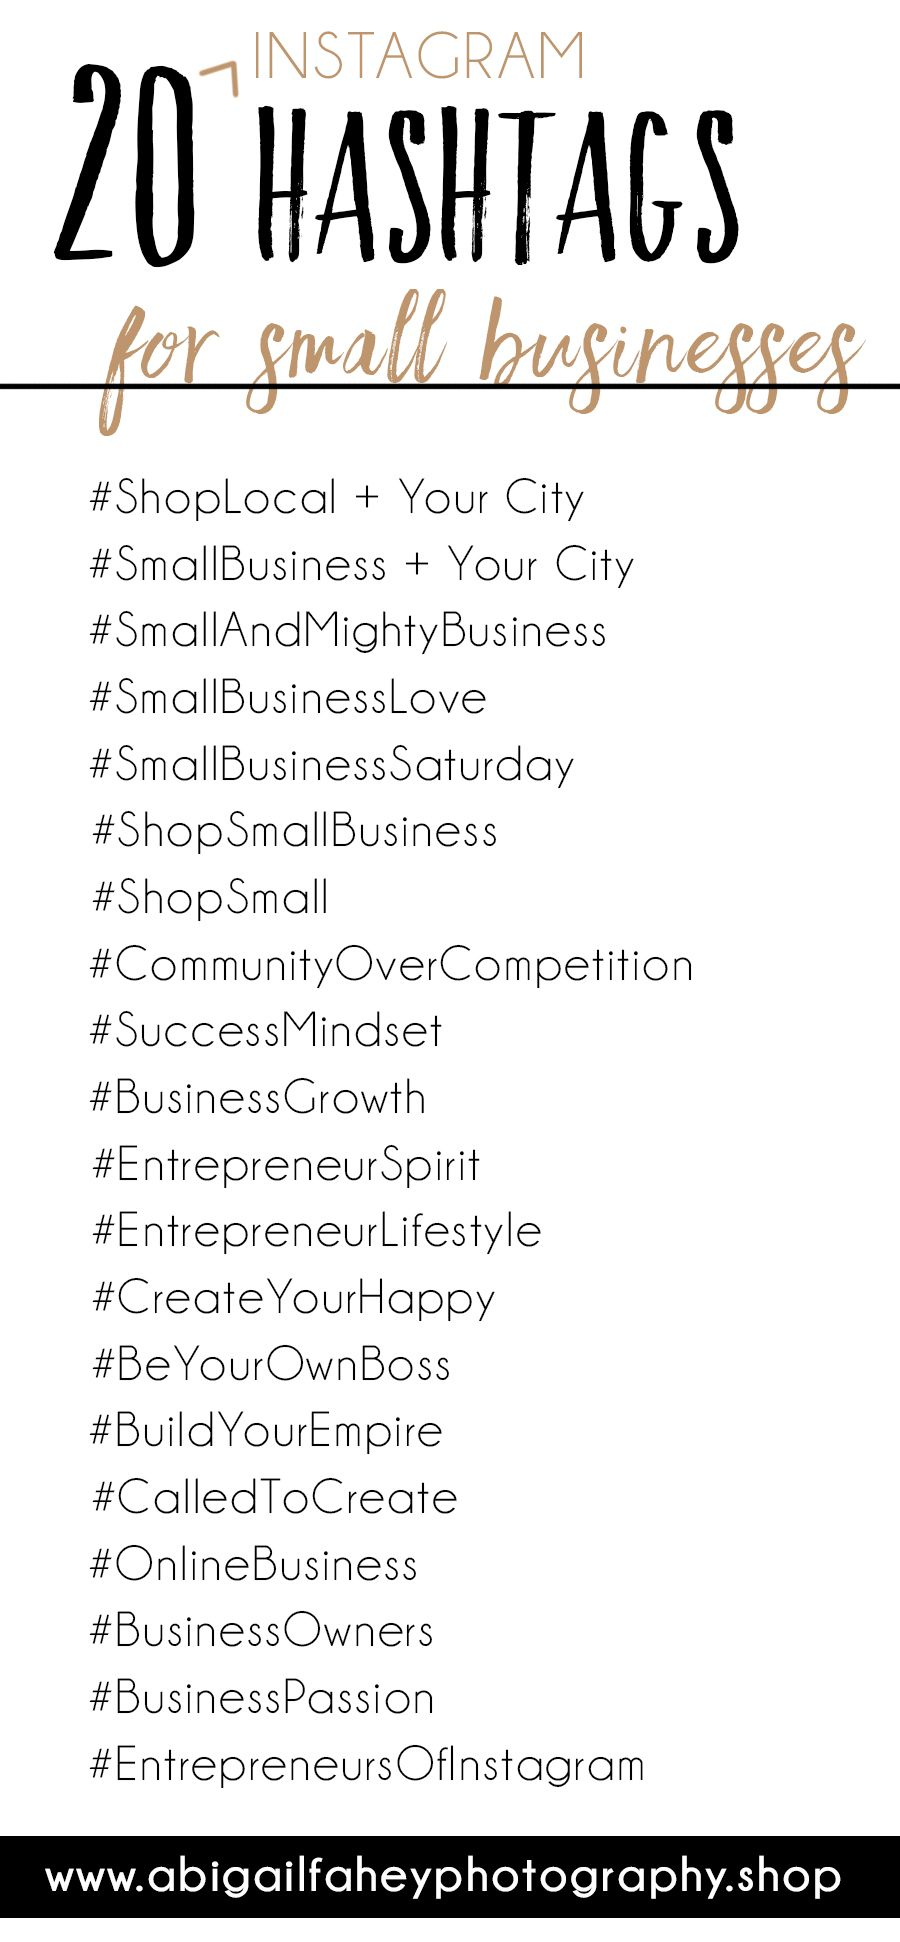 20 Instagram Hashtags For Your Small Business Business Hashtags Small Business Social Media Instagram Business